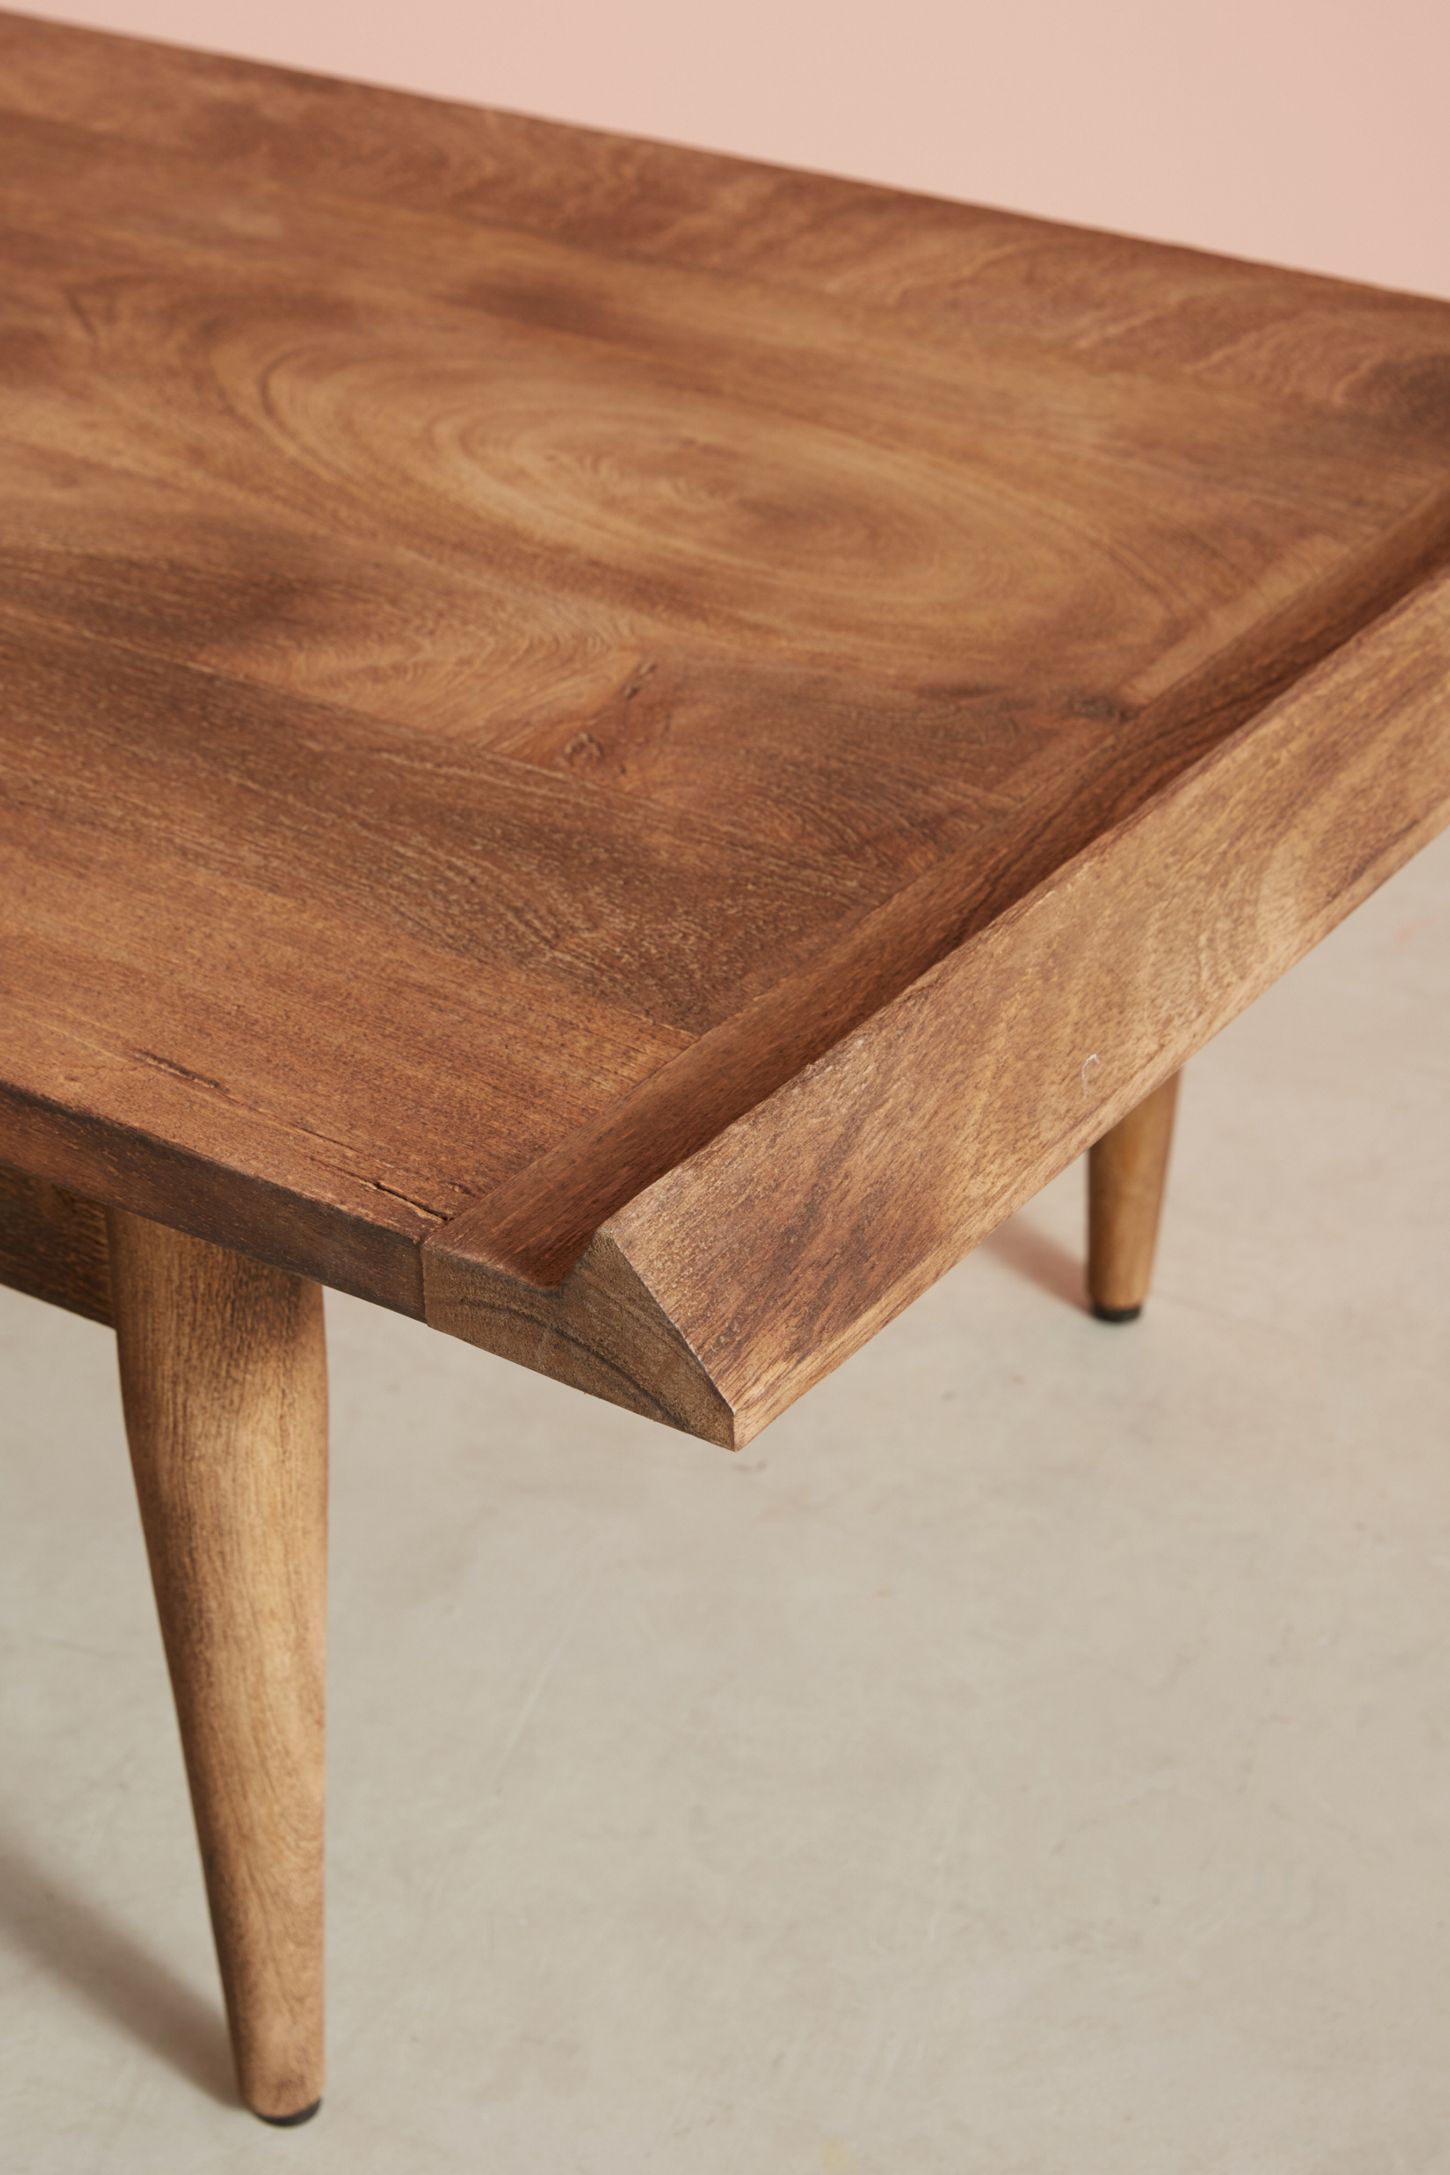 Burnished Wood Coffee Table Coffee Table Wood Coffee Table Table